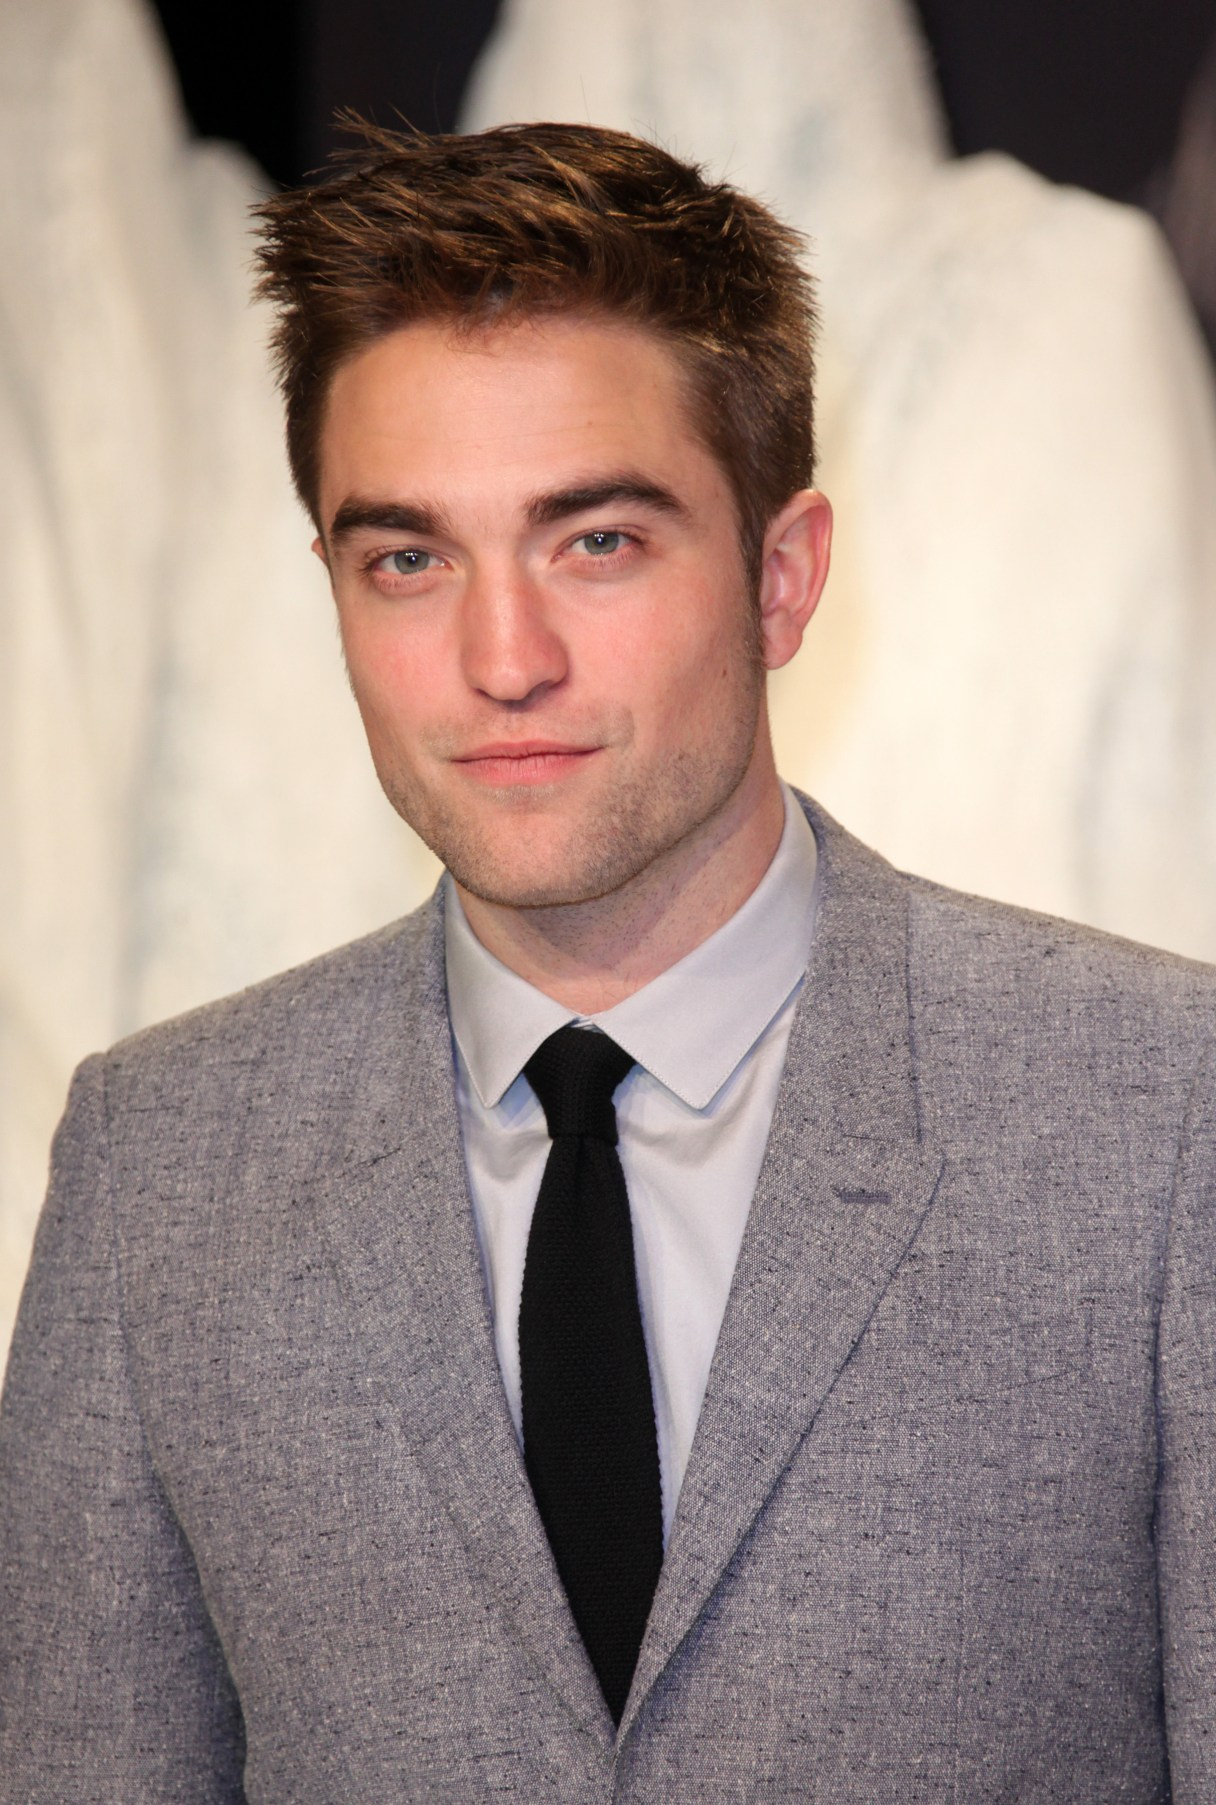 Photos De L'avant-Première de Breaking Dawn Part 2 à Berlin - Robert Pattinson & Kristen Stewart Très Proches